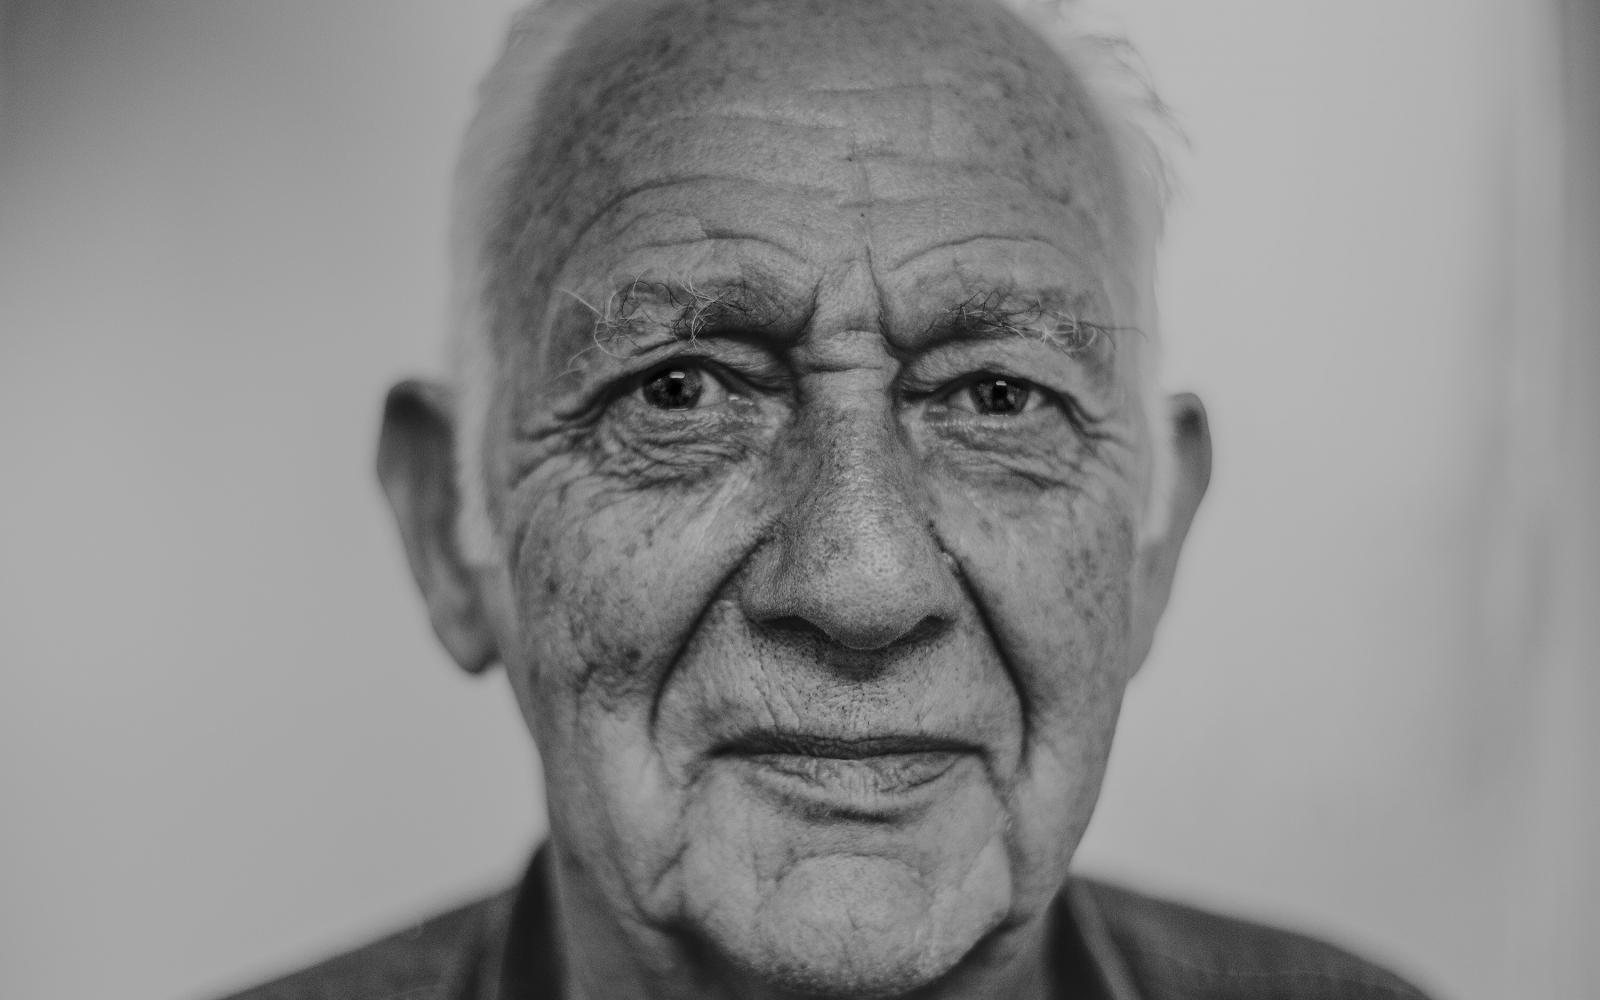 Old man's portrait